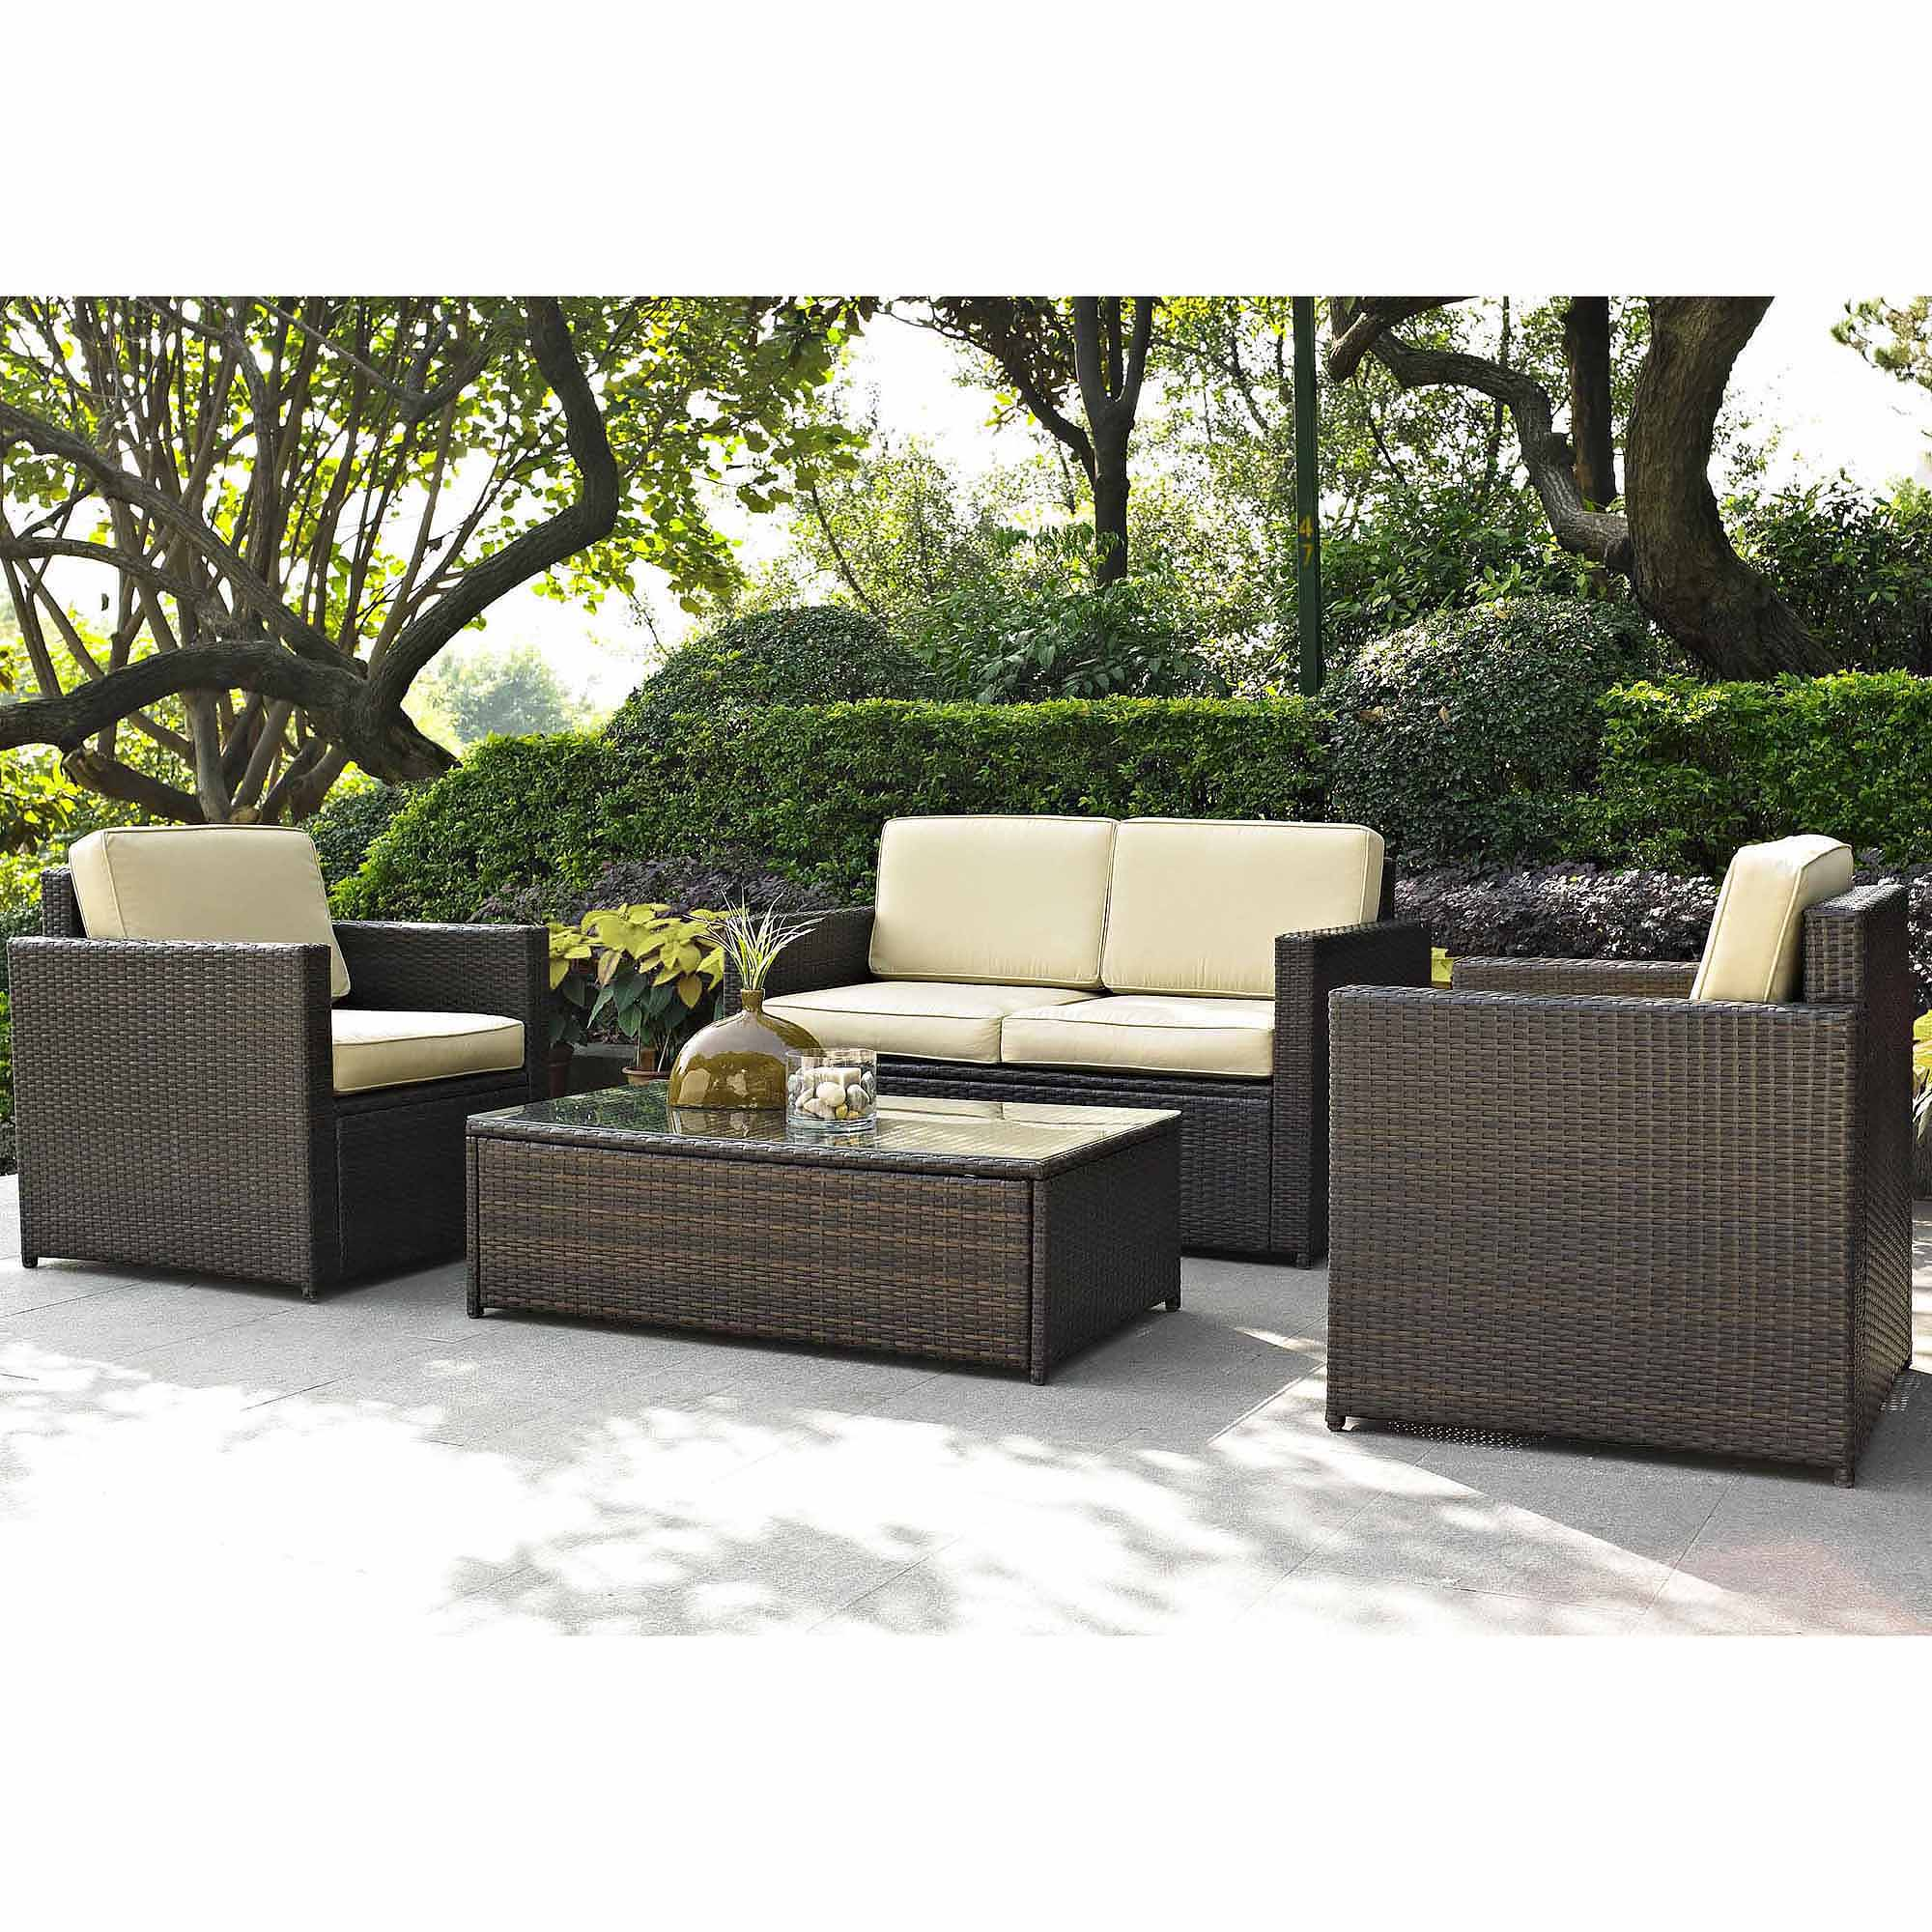 Best Choice Products Outdoor Garden Patio 4pc Cushioned Seat Black Wicker  Sofa Furniture Set   Walmart com. Best Choice Products Outdoor Garden Patio 4pc Cushioned Seat Black